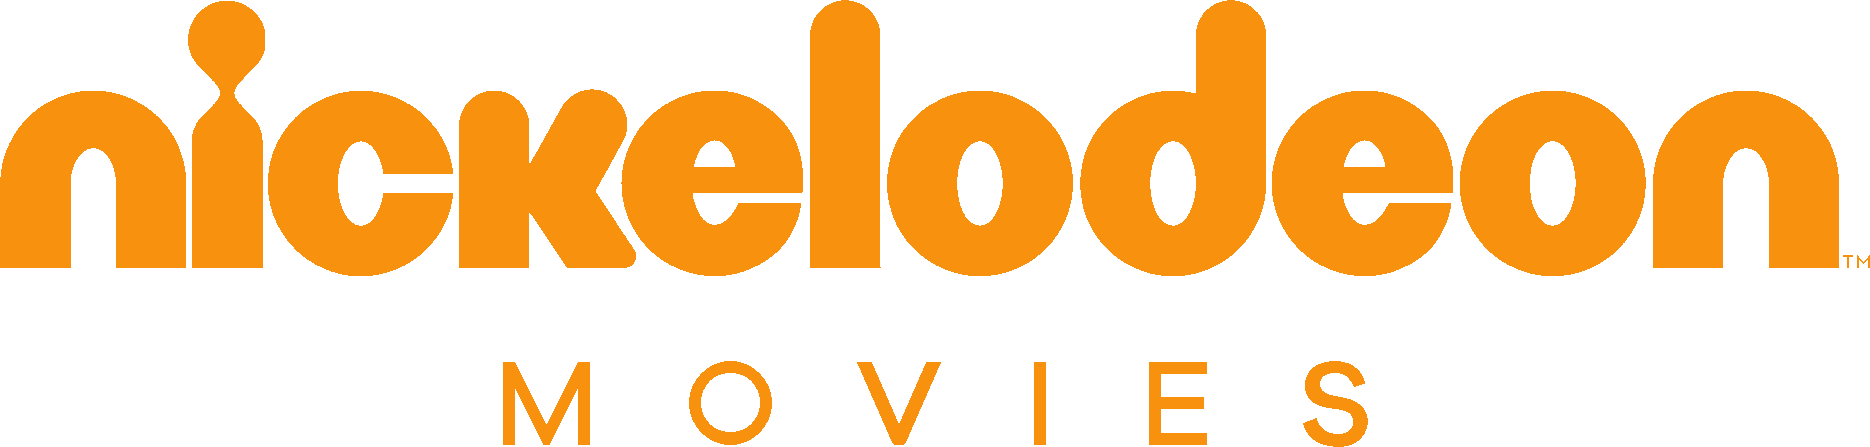 Nickelodeon Movies The Jh Movie Collection S Official Wiki Fandom